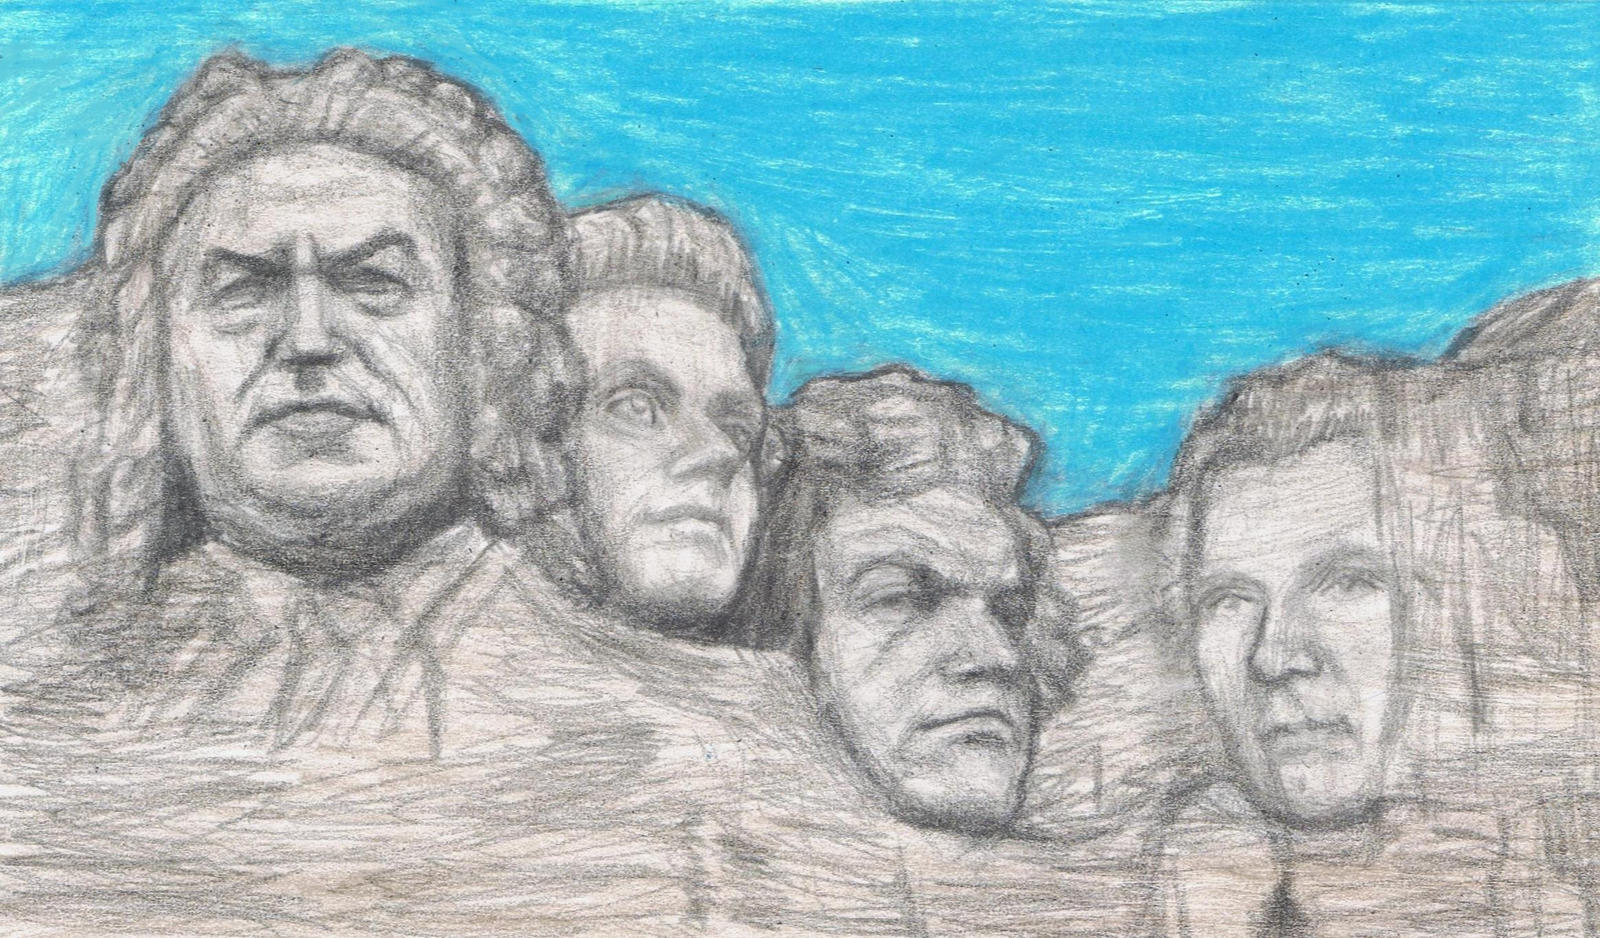 Famous composers on Mt Rushmore